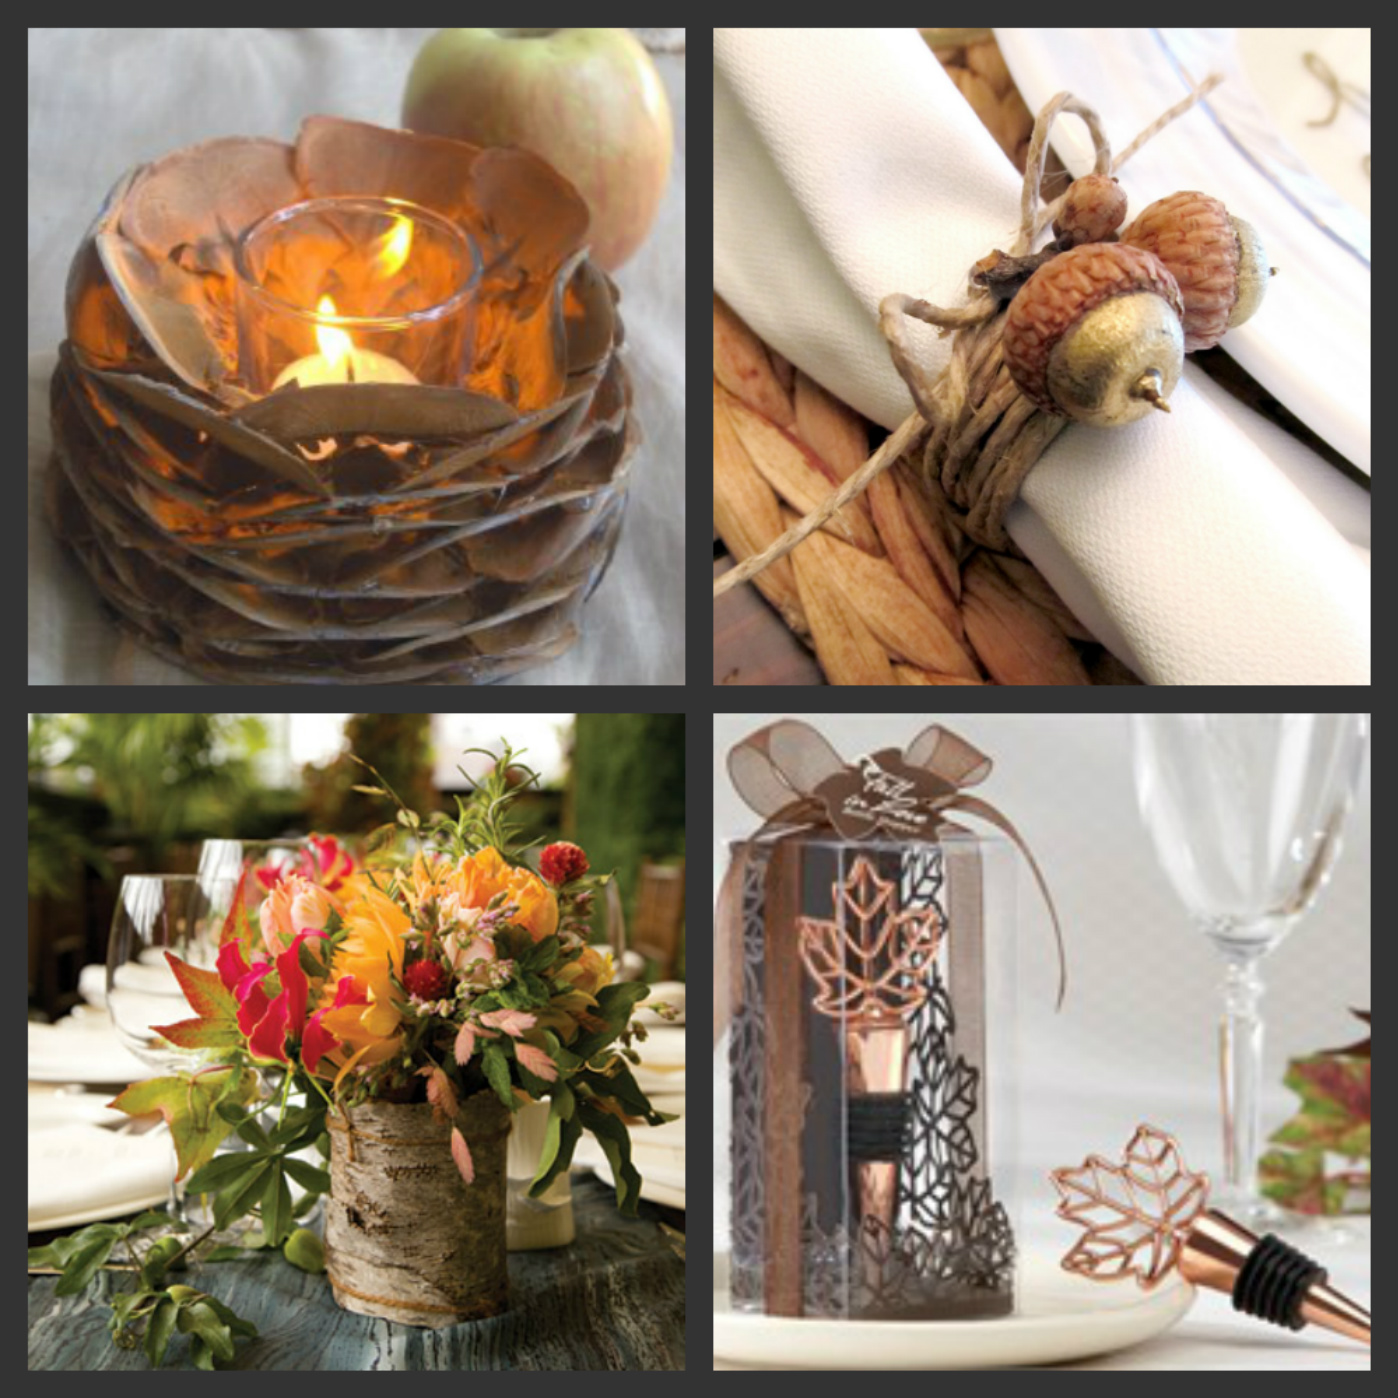 Weddings are fun blog diy autumn wedding tables for Autumn wedding decoration ideas